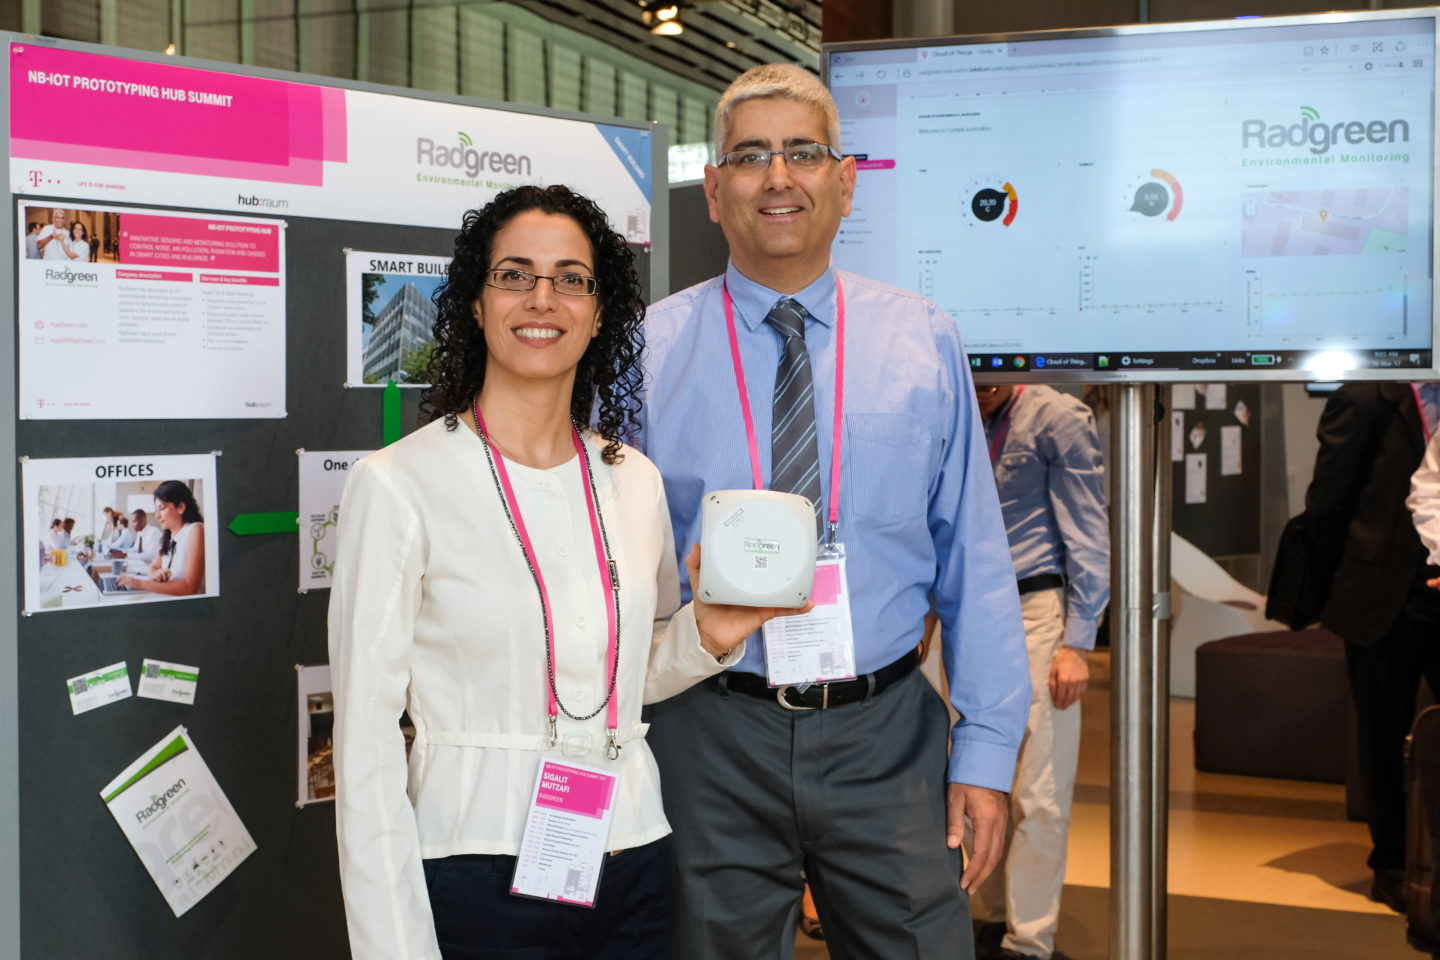 An innovative couple is using environmental sensors to tackle pollution |The Switchers